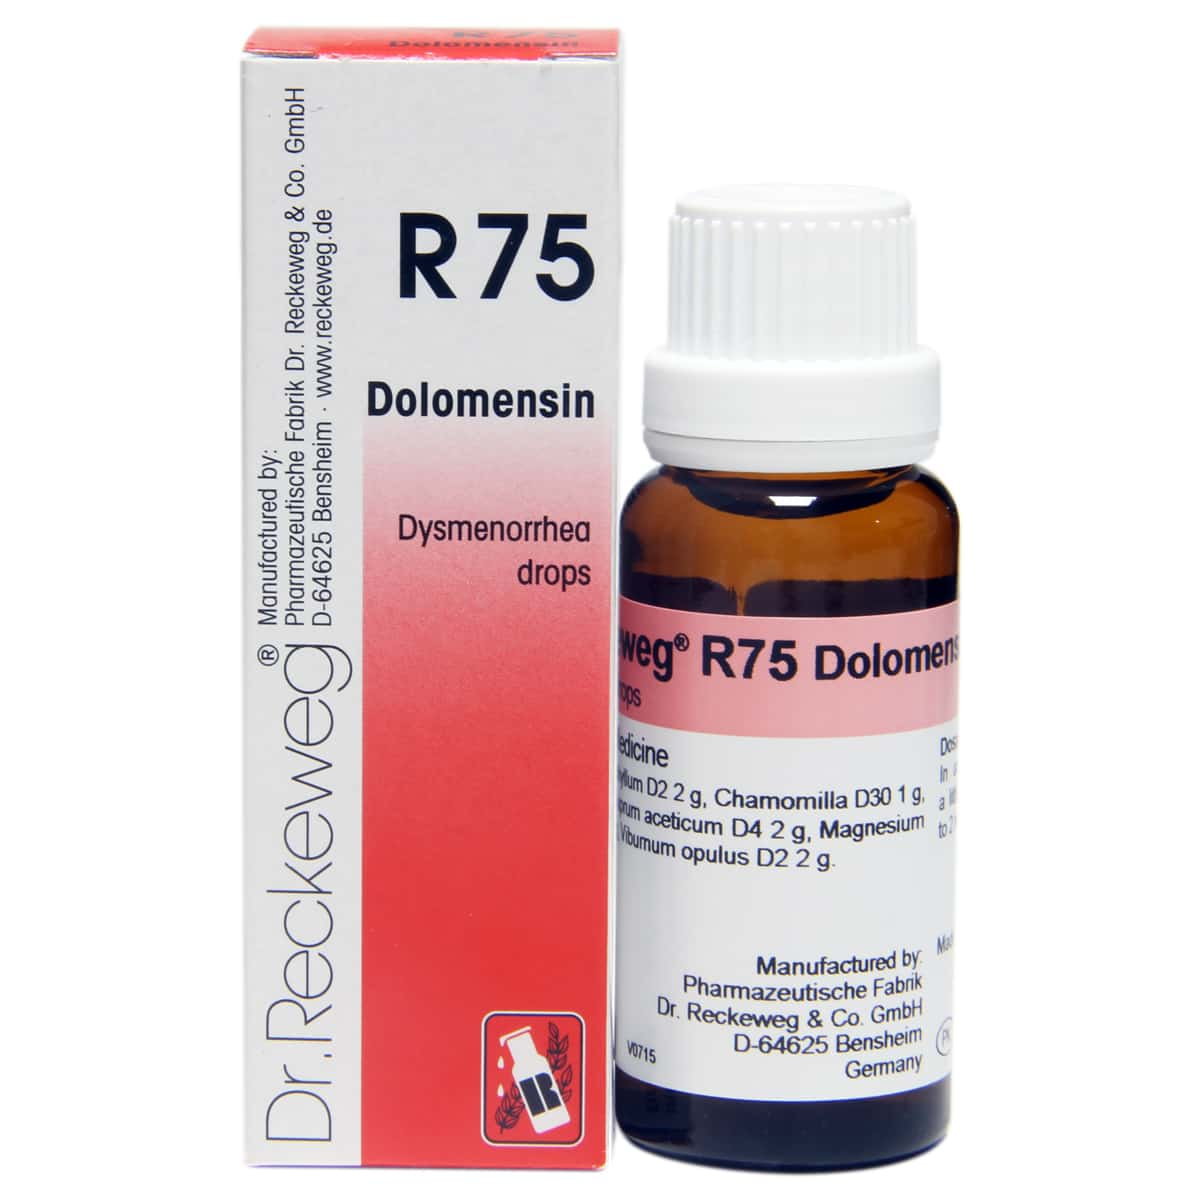 R75-Homeopathicology.com